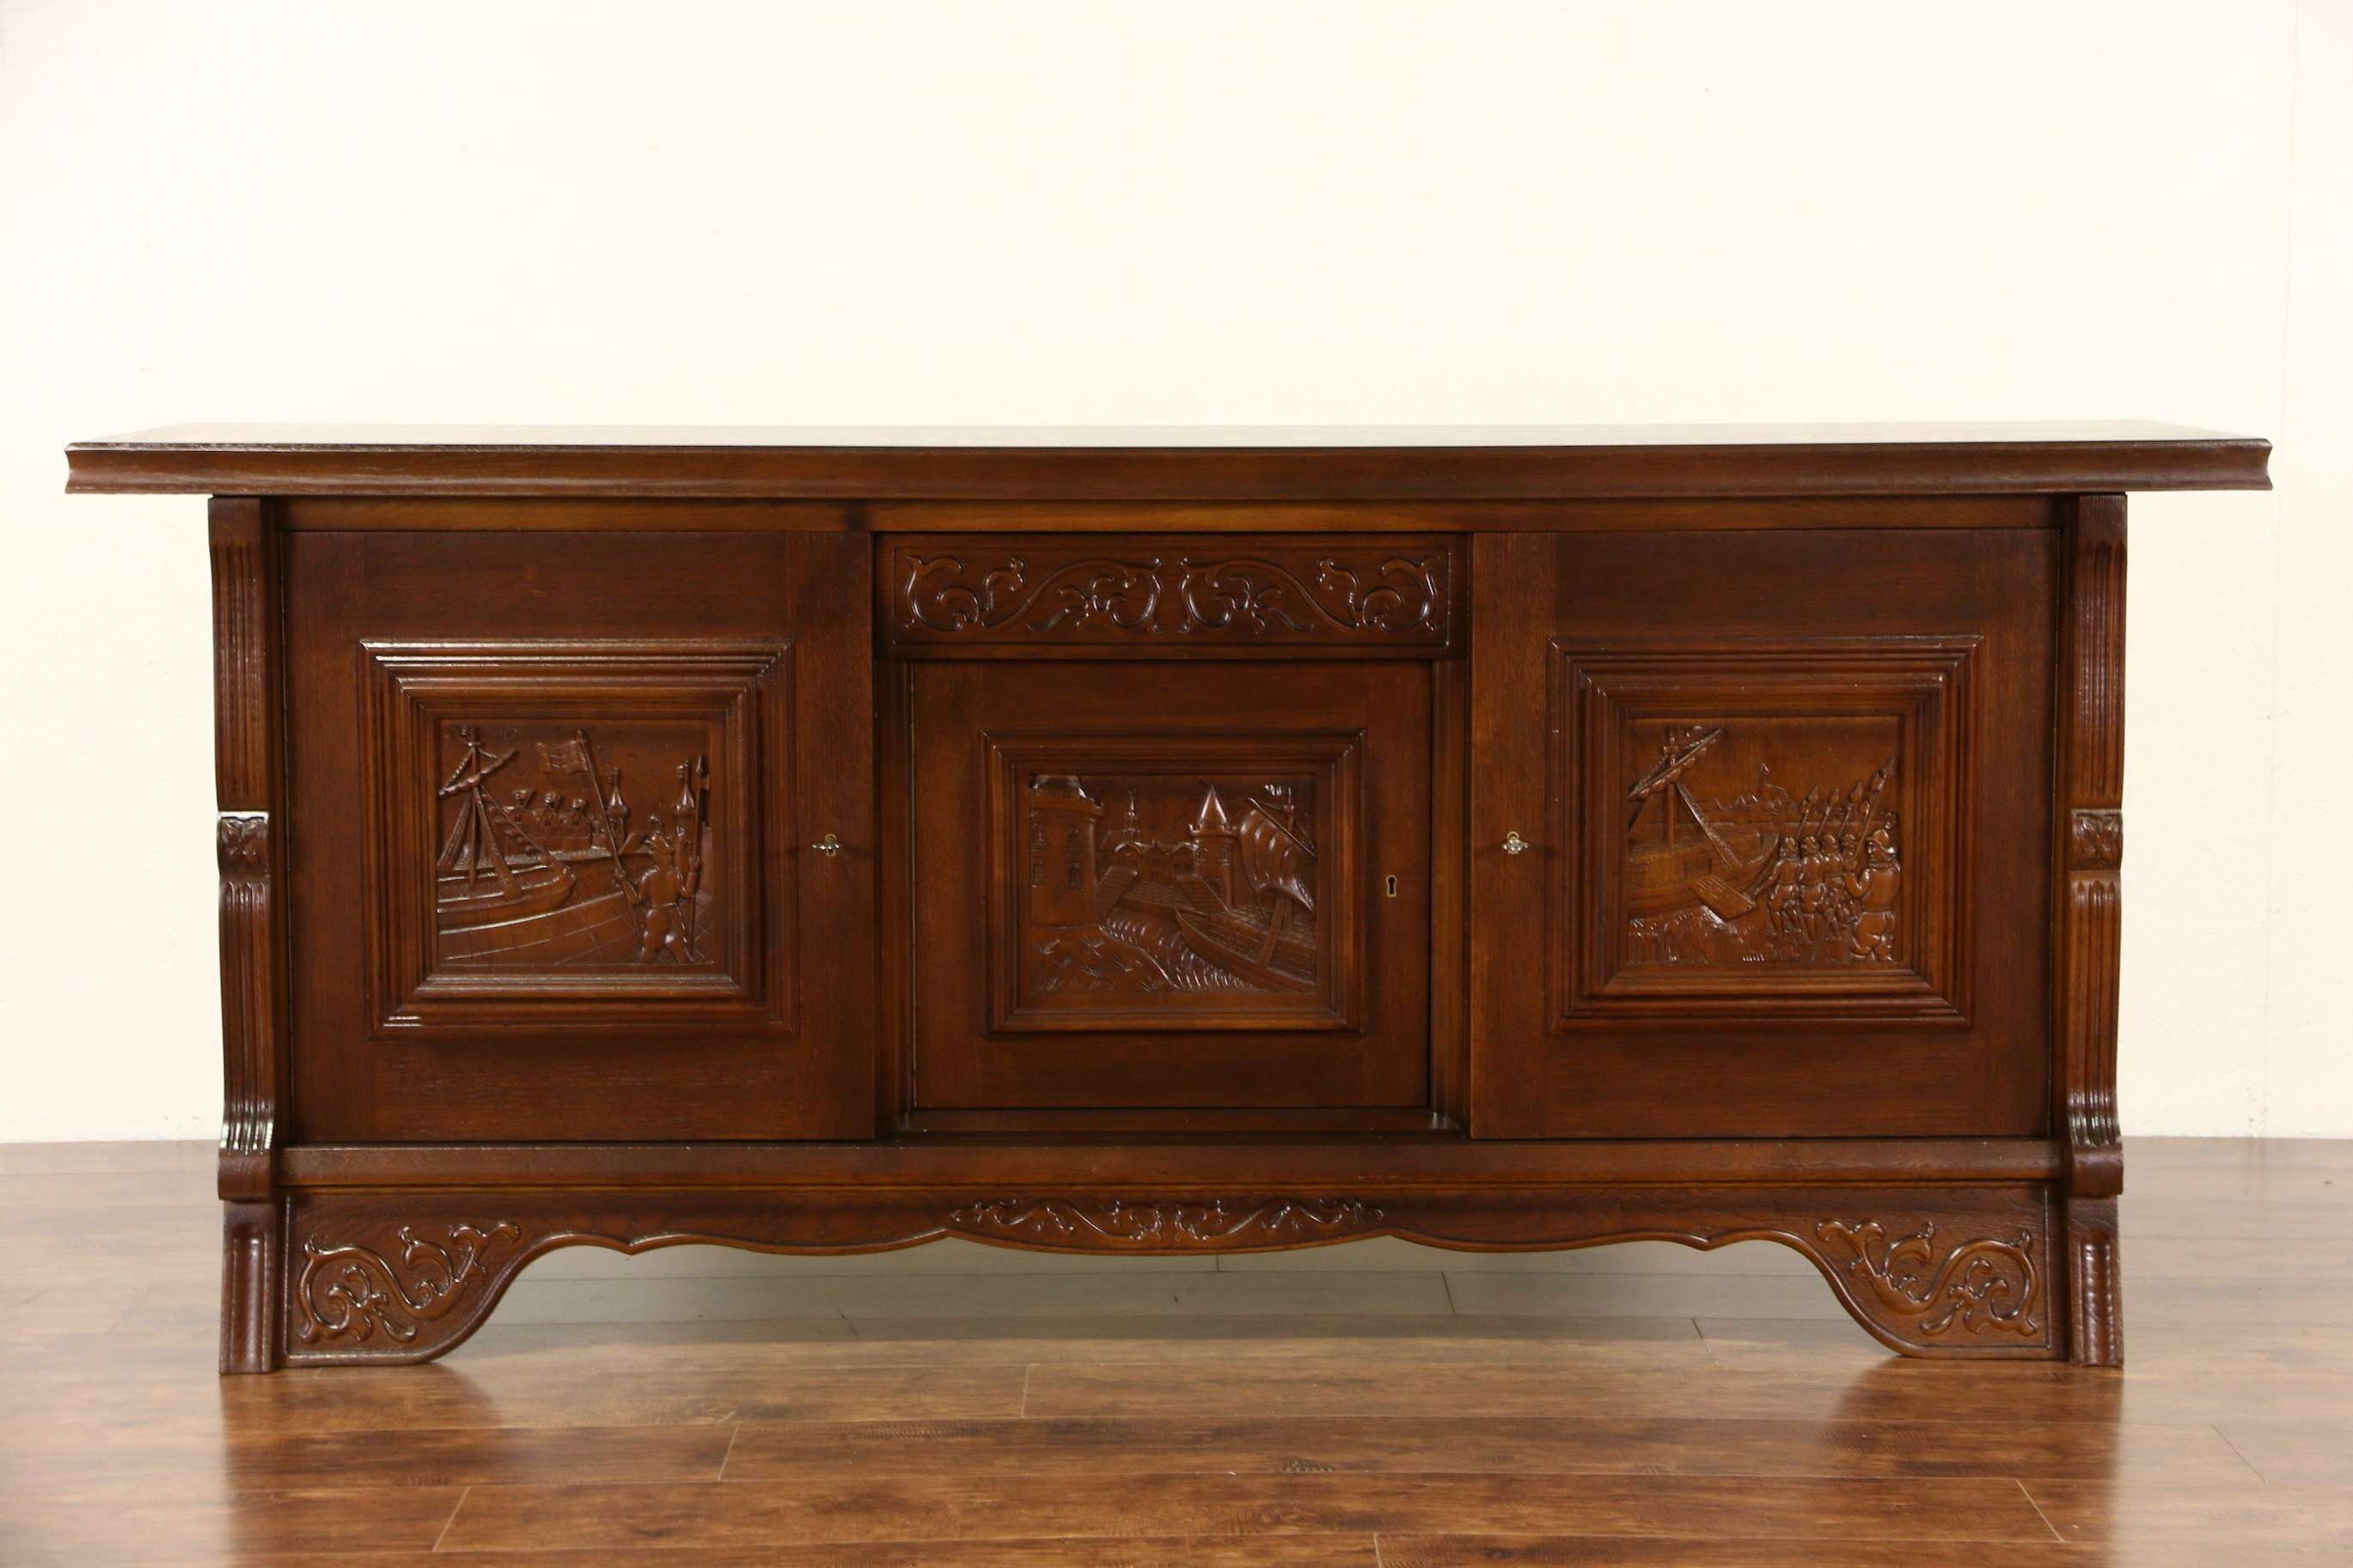 New Credenzas And Sideboards – Bjdgjy For Credenzas And Sideboards (View 12 of 20)